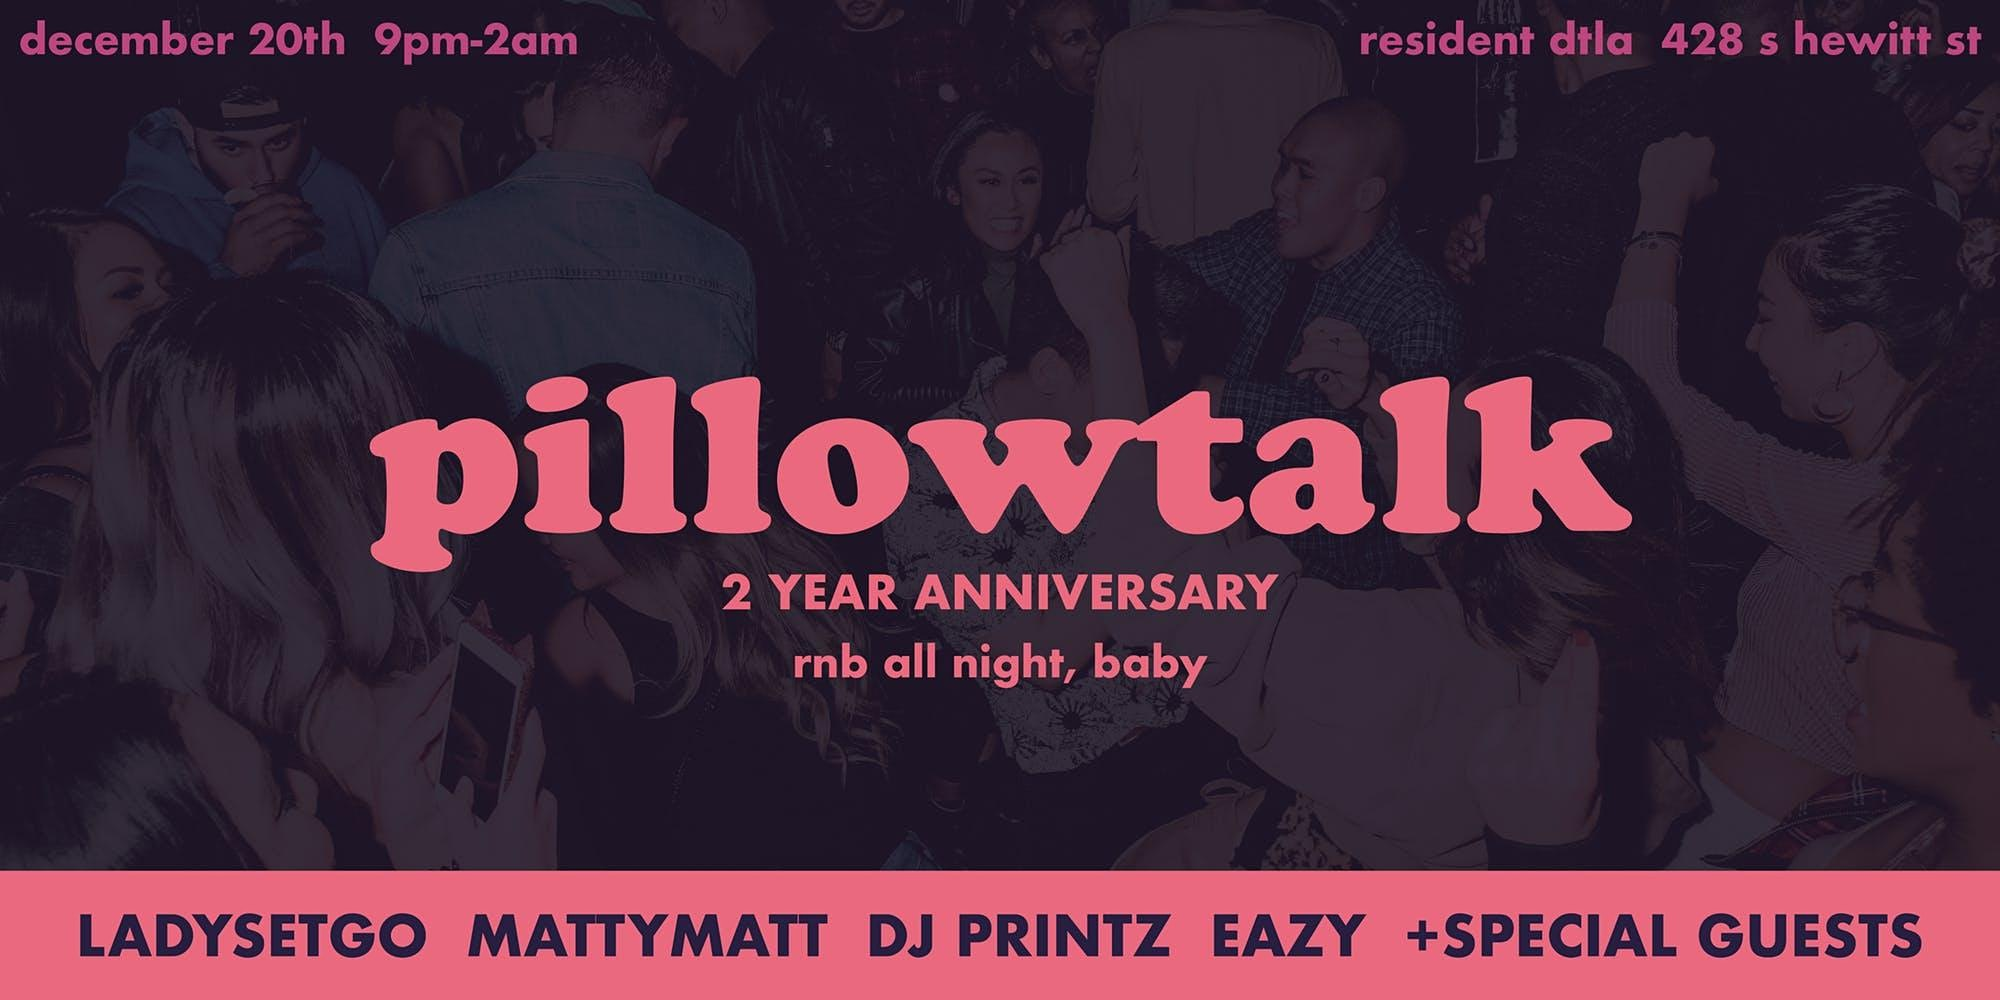 Pillowtalk - 2 Year Anniversary